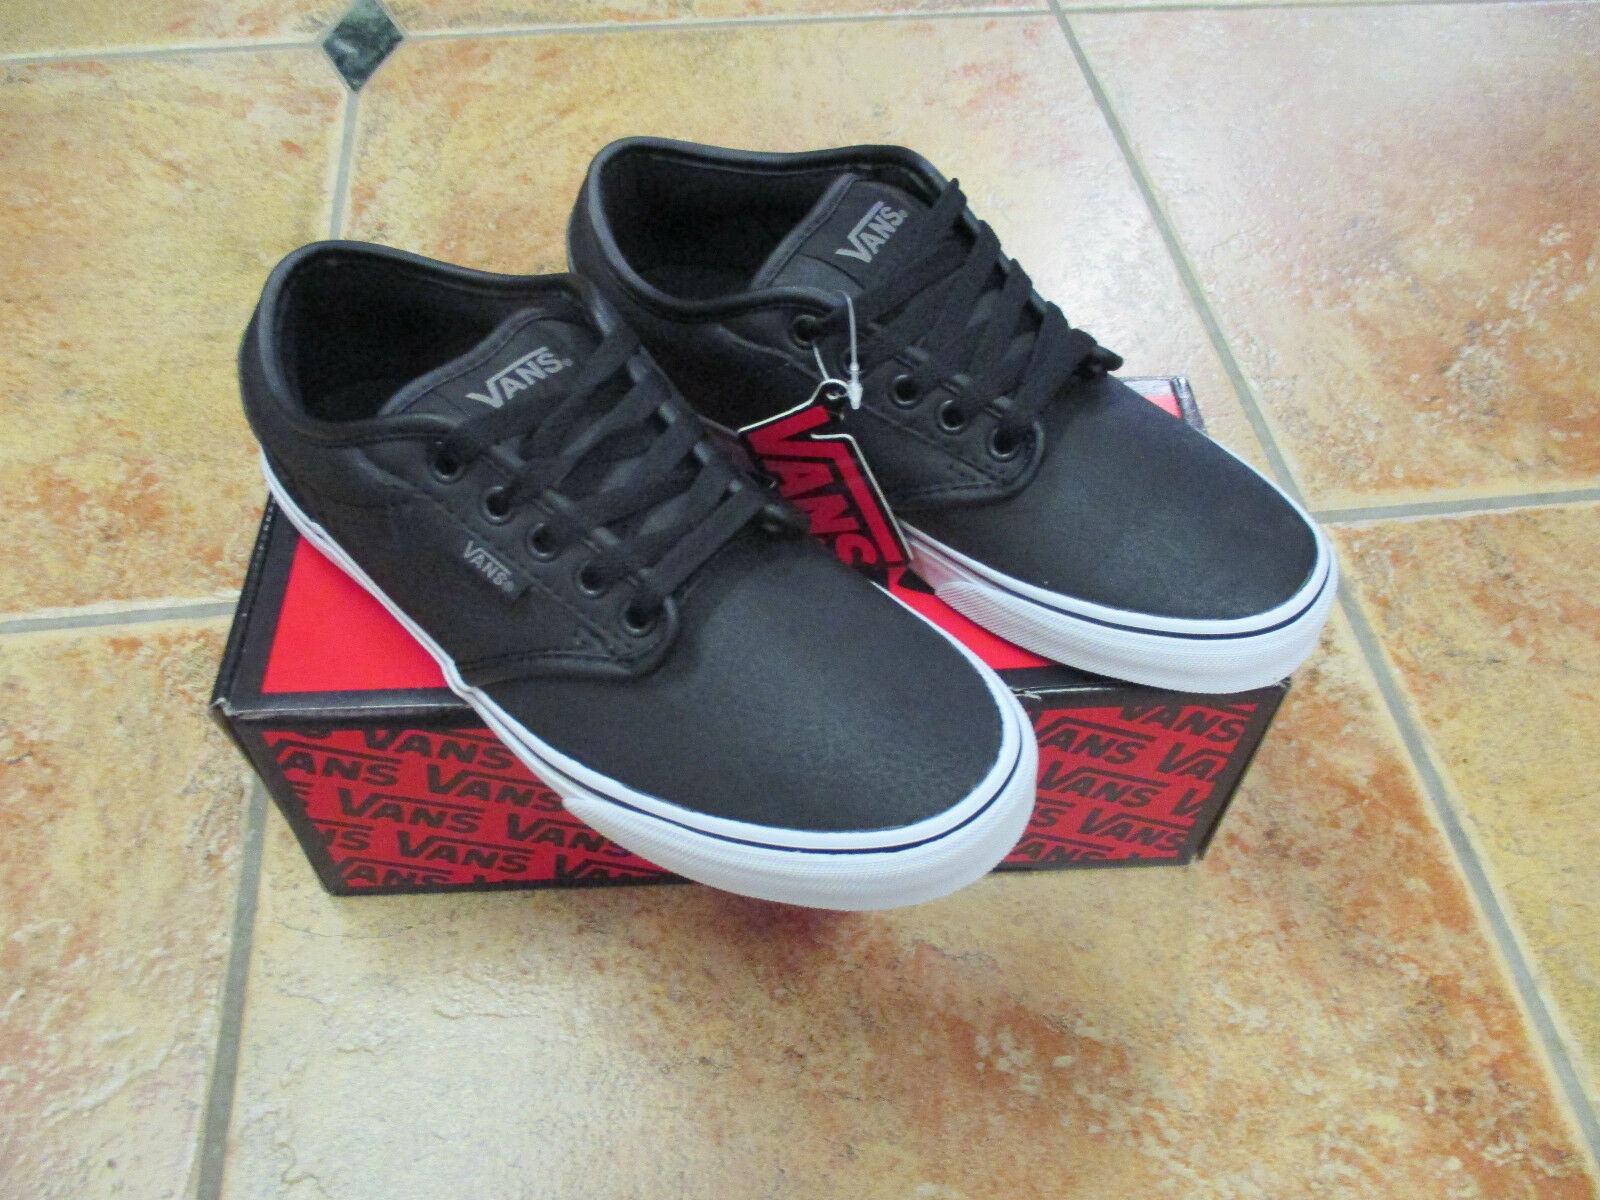 VANS  Atwood White (Buck Leather) Black / White Atwood Gr. 40 US 7,5  Mod. VN-OX BODA7  NEU 4d577a